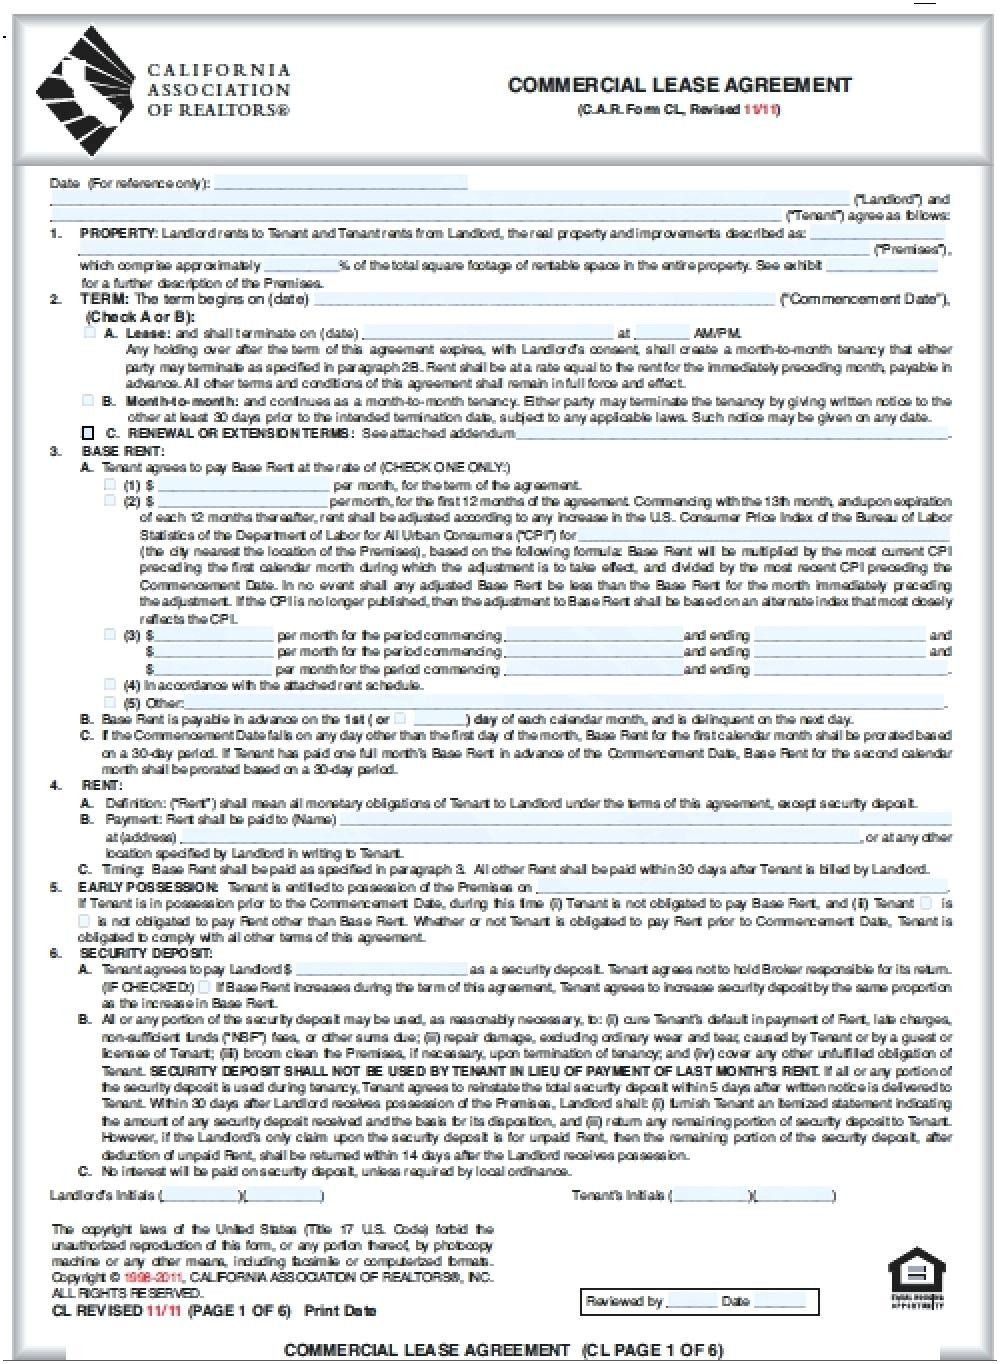 Texas Rental Agreement Contract Texas Association Of Realtors Commercial Lease Agreement Form Nickcornishphotography Com